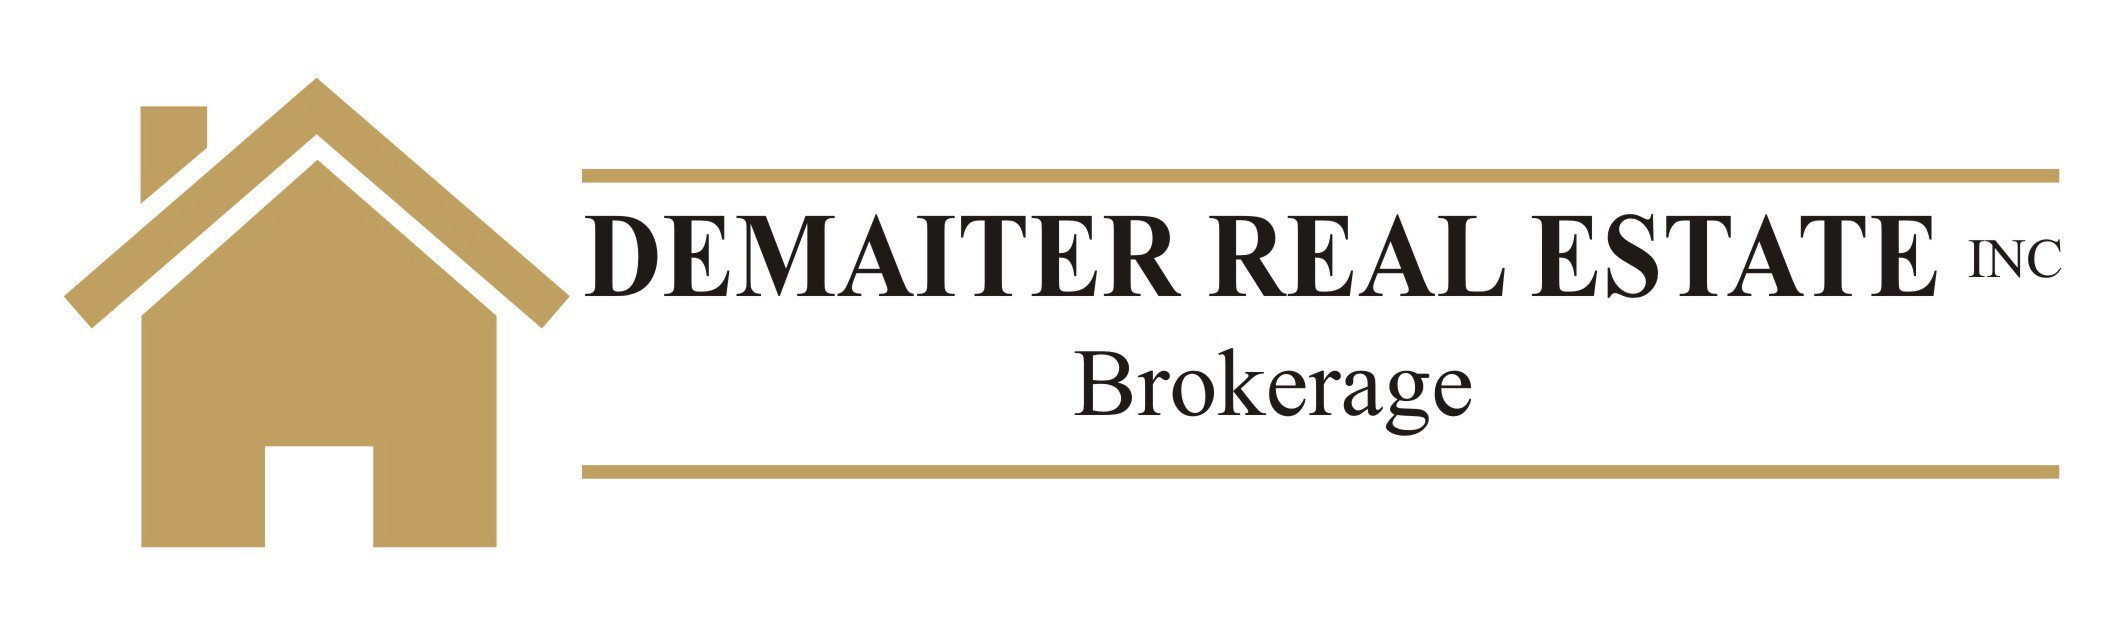 Demaiter Real Estate Inc. Brokerage